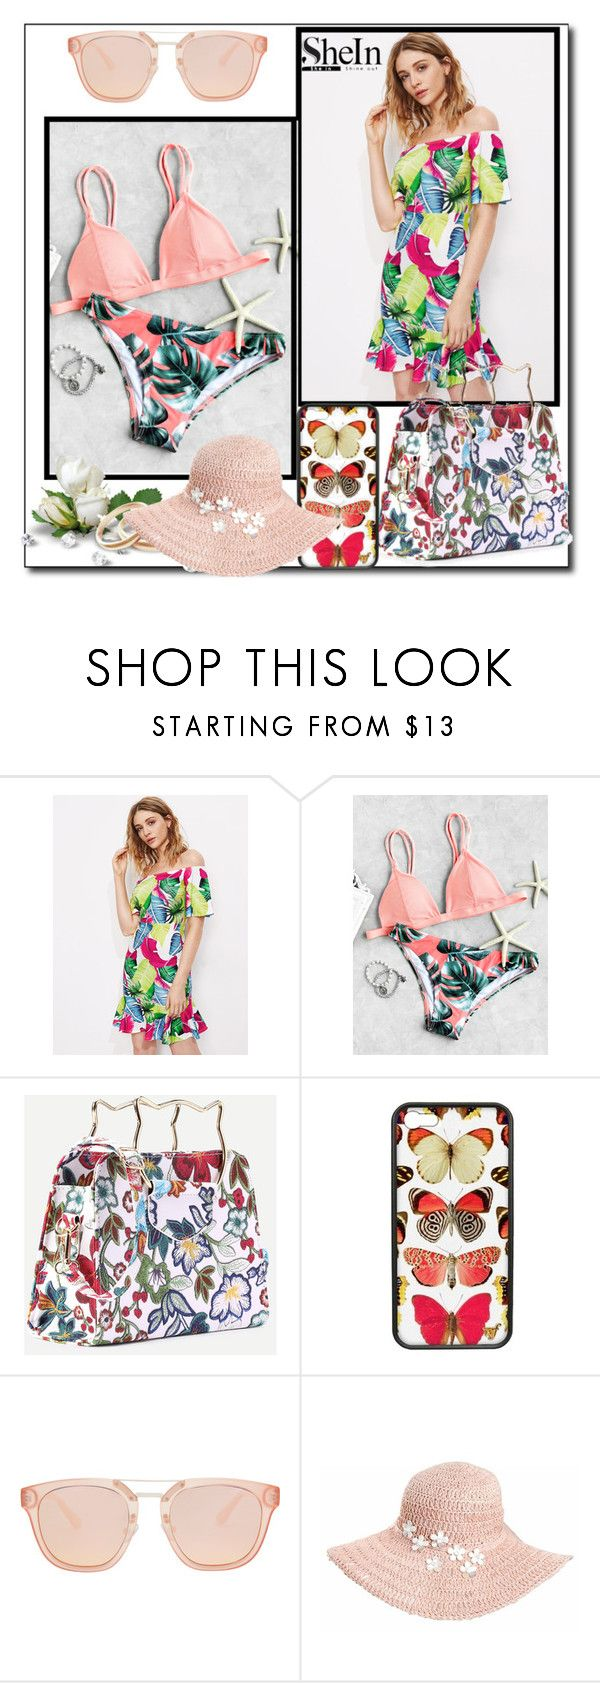 """""""Shein XXIV-4"""" by azra-90 ❤ liked on Polyvore featuring Dorfman Pacific"""